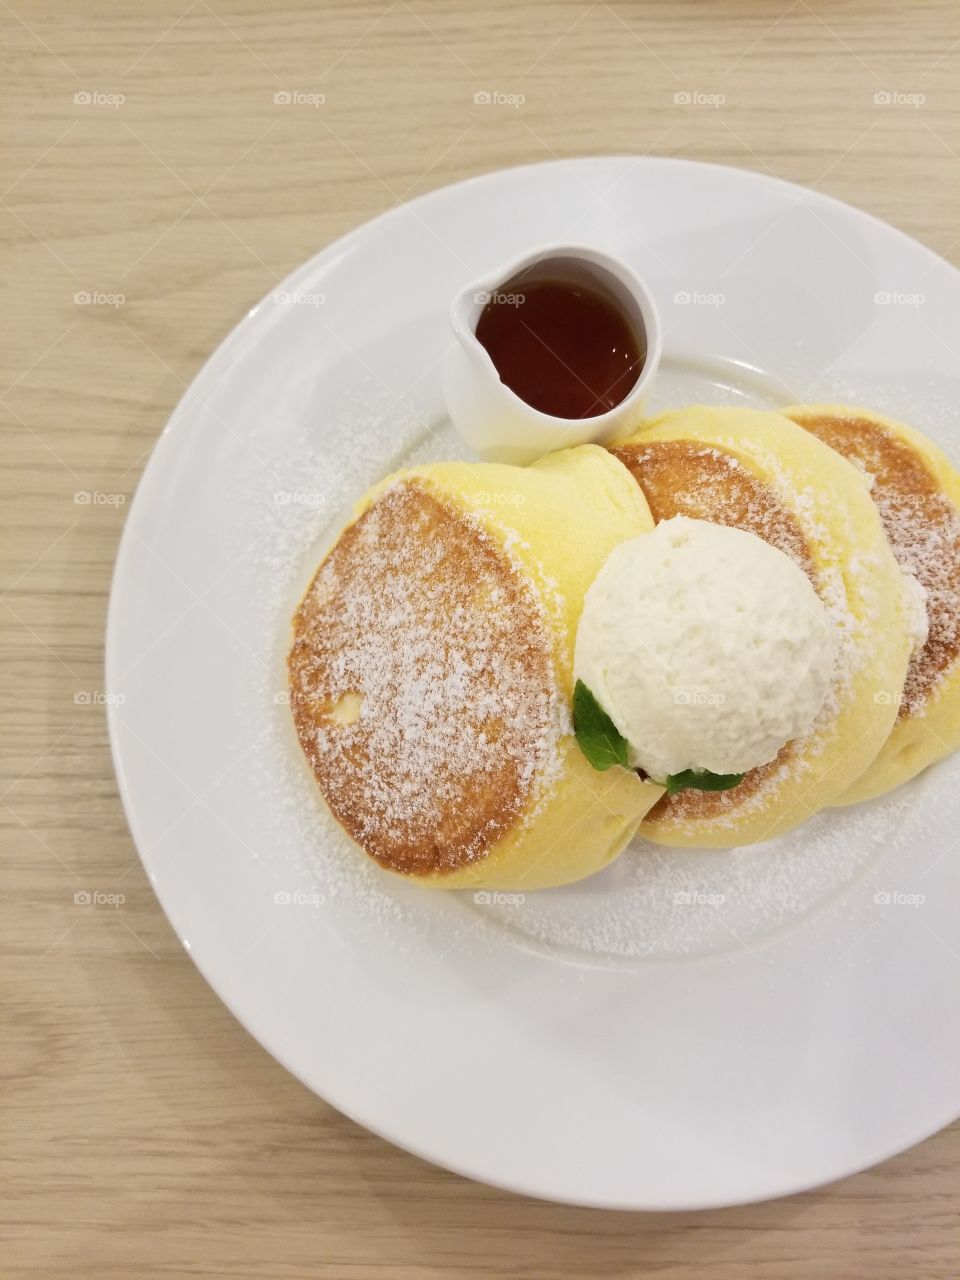 Japanese fluffy pancakes again delicious